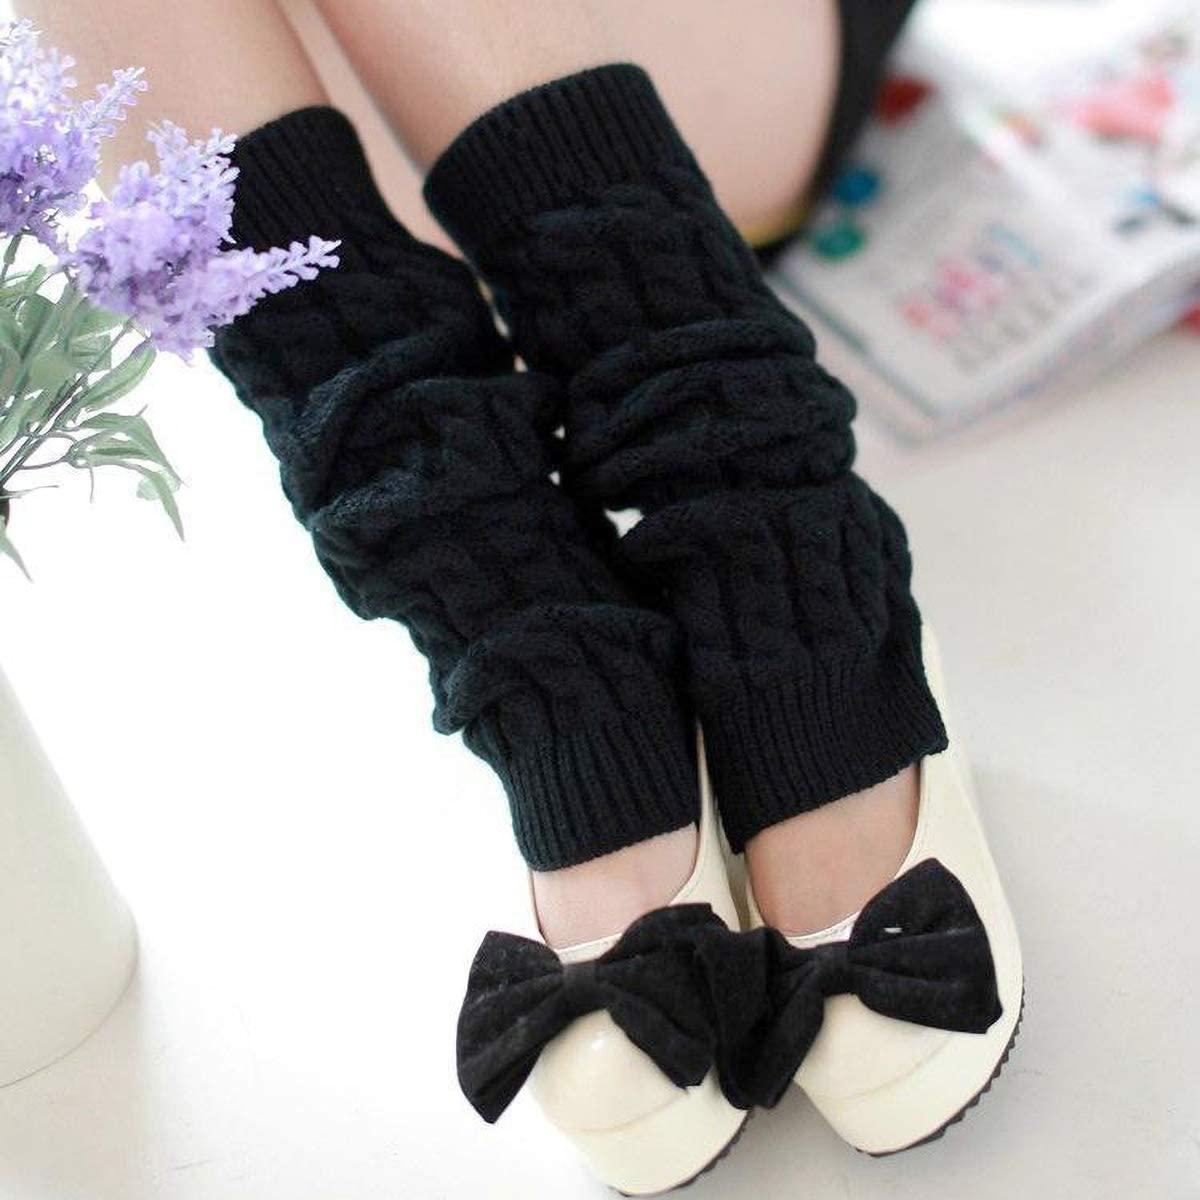 Leg Warmers Women's Fashion Knitted Crochet Long Boot Socks, 4 Pairs Knee High Cable Knit Thermal Winter Sleeve for Lady